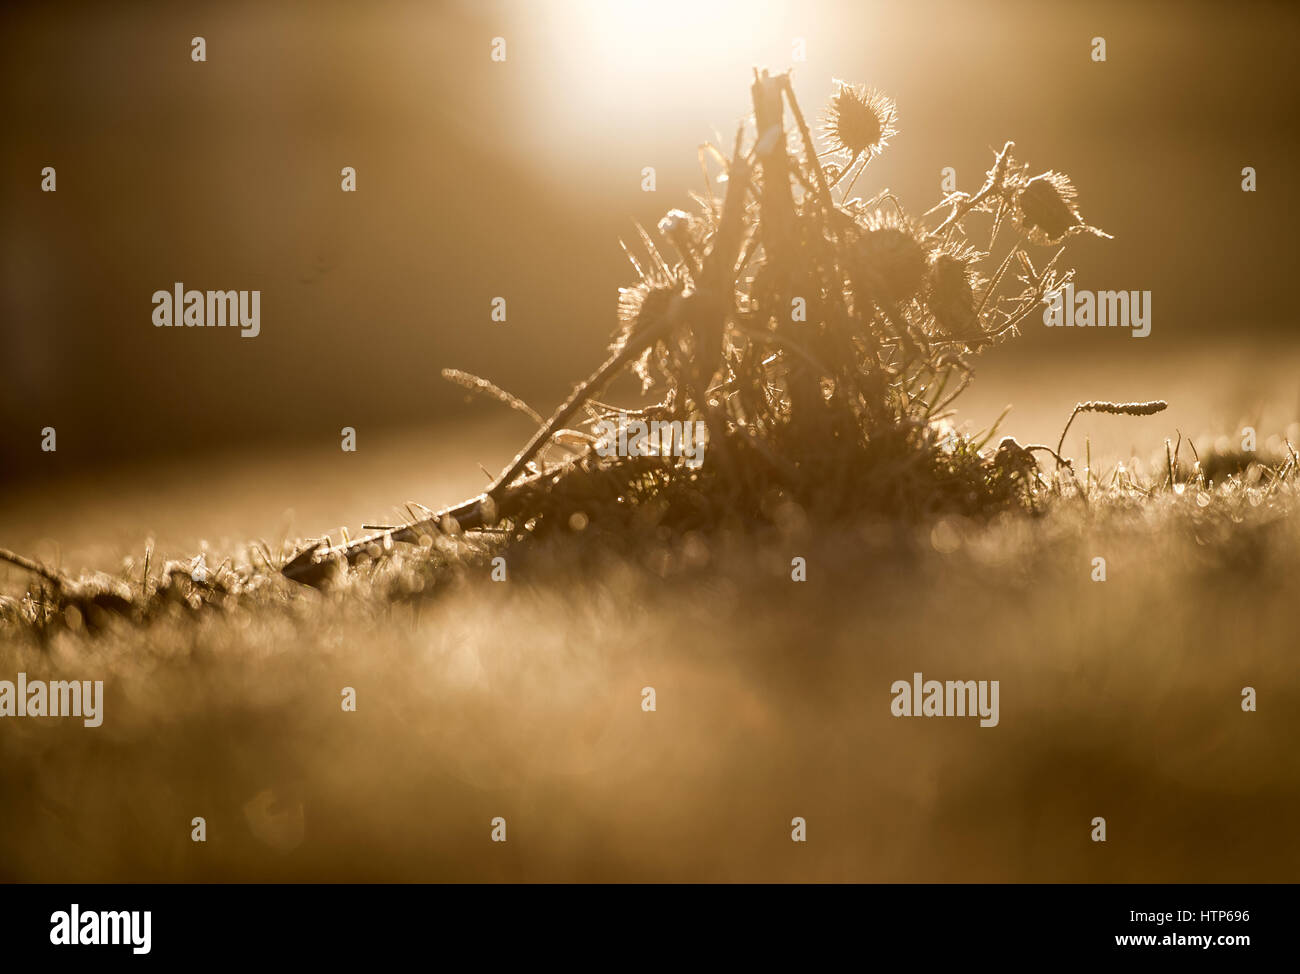 Rottach-Egern, Germany. 14th Mar, 2017. The morning sun lights up dried thistles in an unearthly glow on a pitch - Stock Image